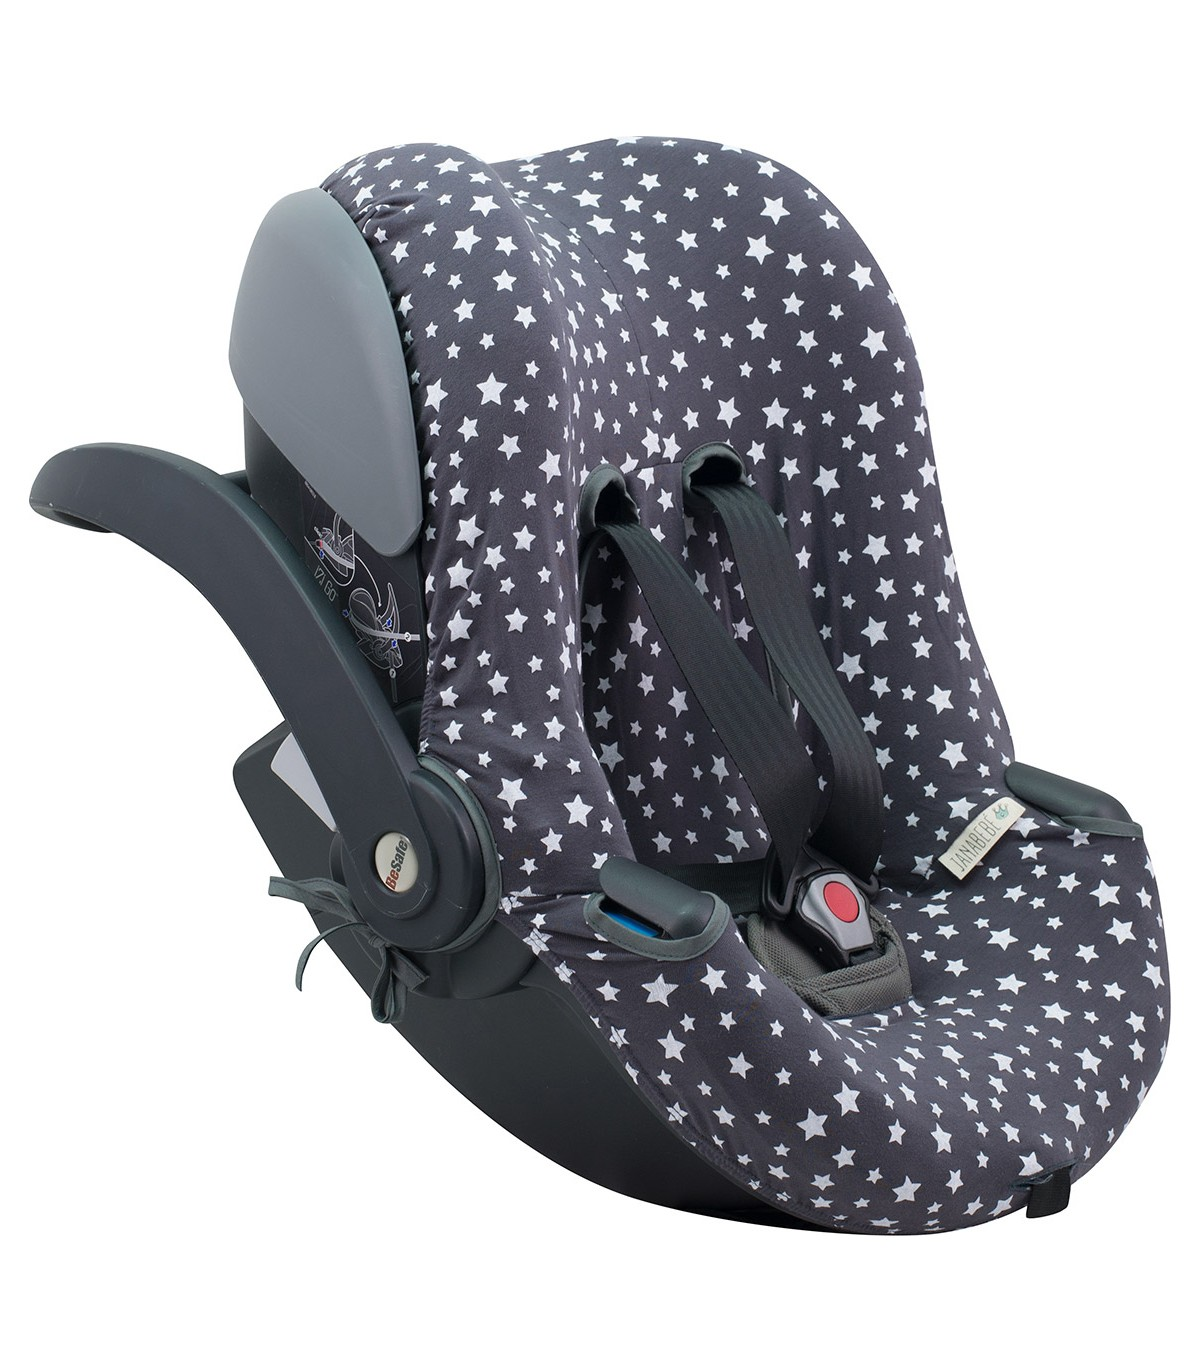 Marvelous Car Seat Covers Janabebe Cover Liner For Besafe Izi Go Frankydiablos Diy Chair Ideas Frankydiabloscom